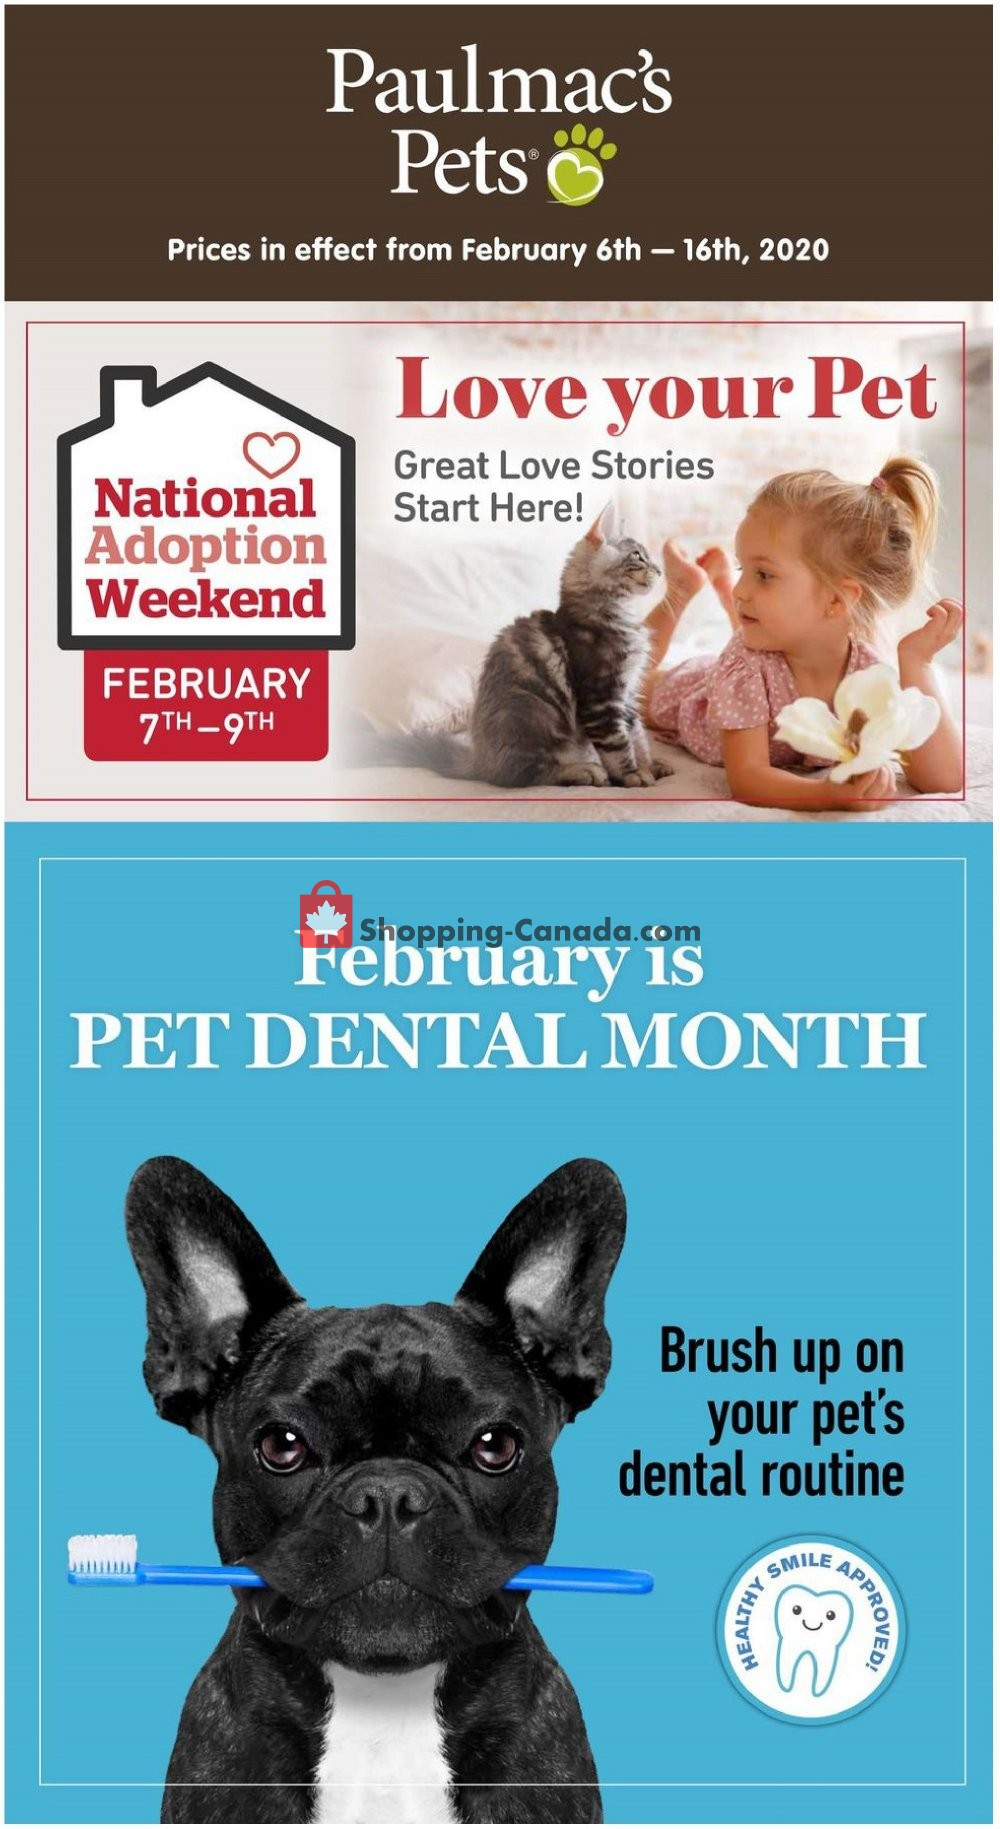 Flyer Paulmac's Pets Canada - from Thursday February 6, 2020 to Sunday February 16, 2020